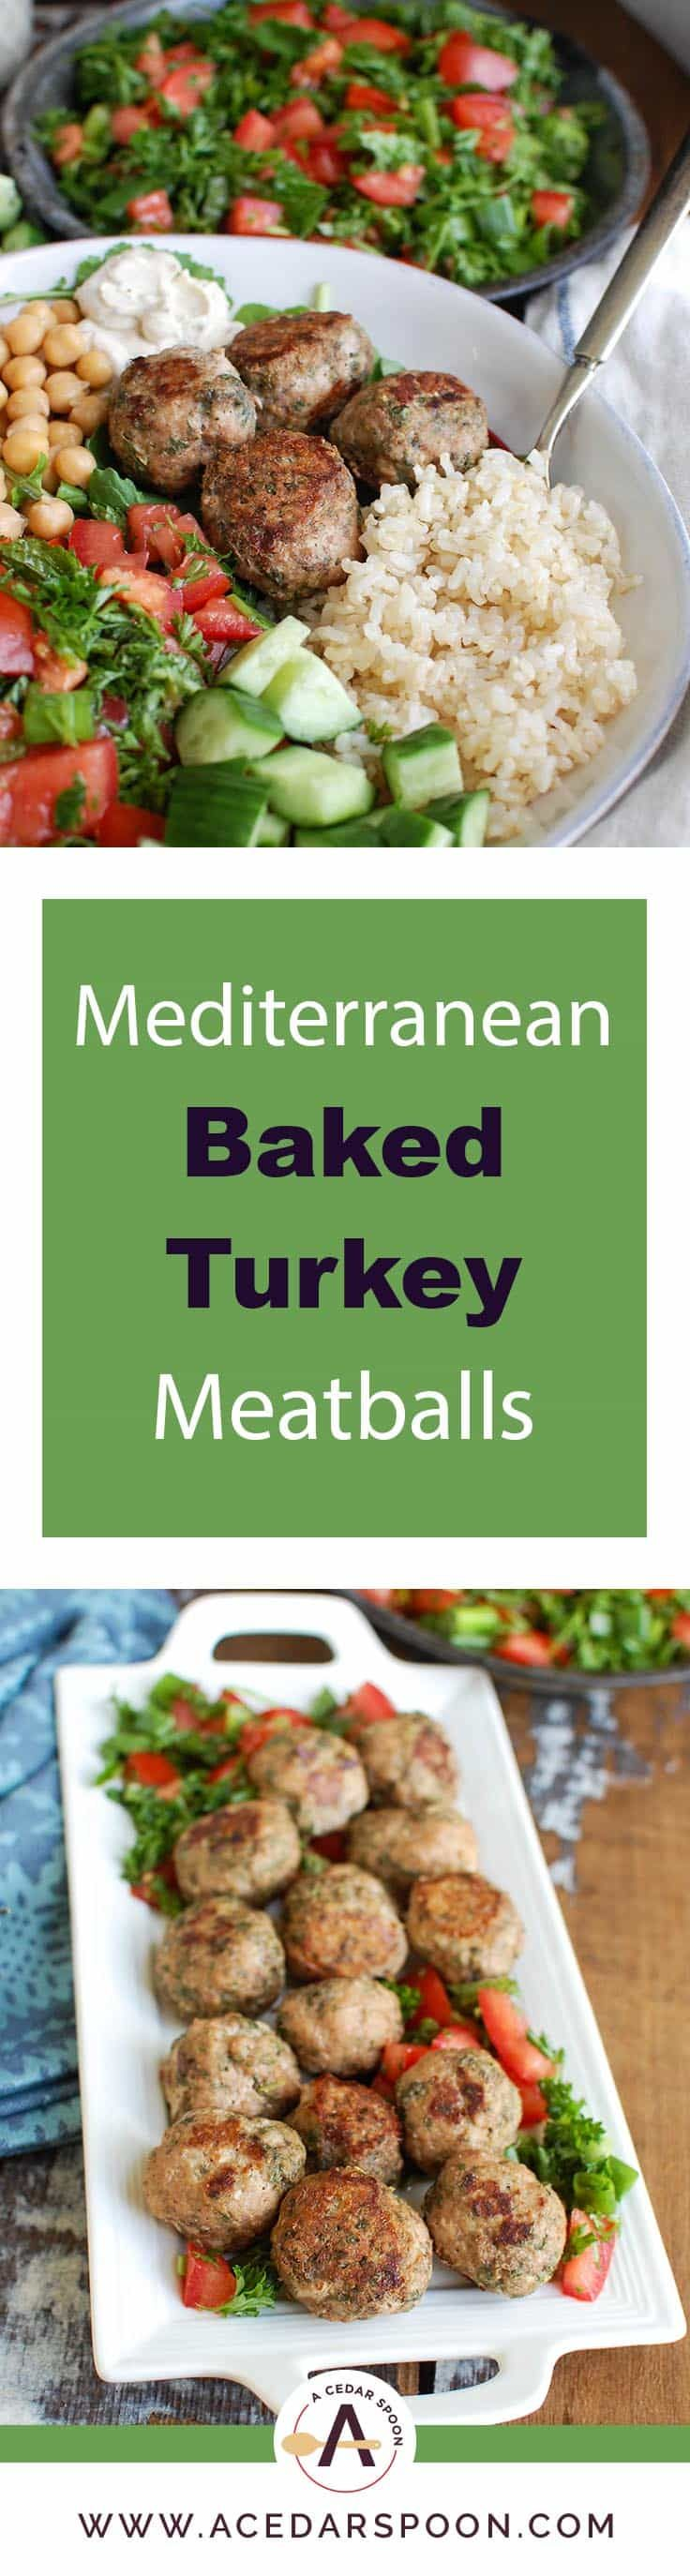 Mediterranean Baked Turkey Meatballs are turkey meatballs mixed with the warm, rich spices of cumin, cinnamon, allspice and cayenne pepper. These meatballs are lean and baked to create a healthy meal option. Pair these with fresh Mediterranean ingredients to create a rice bowl for dinner! // A Cedar Spoon